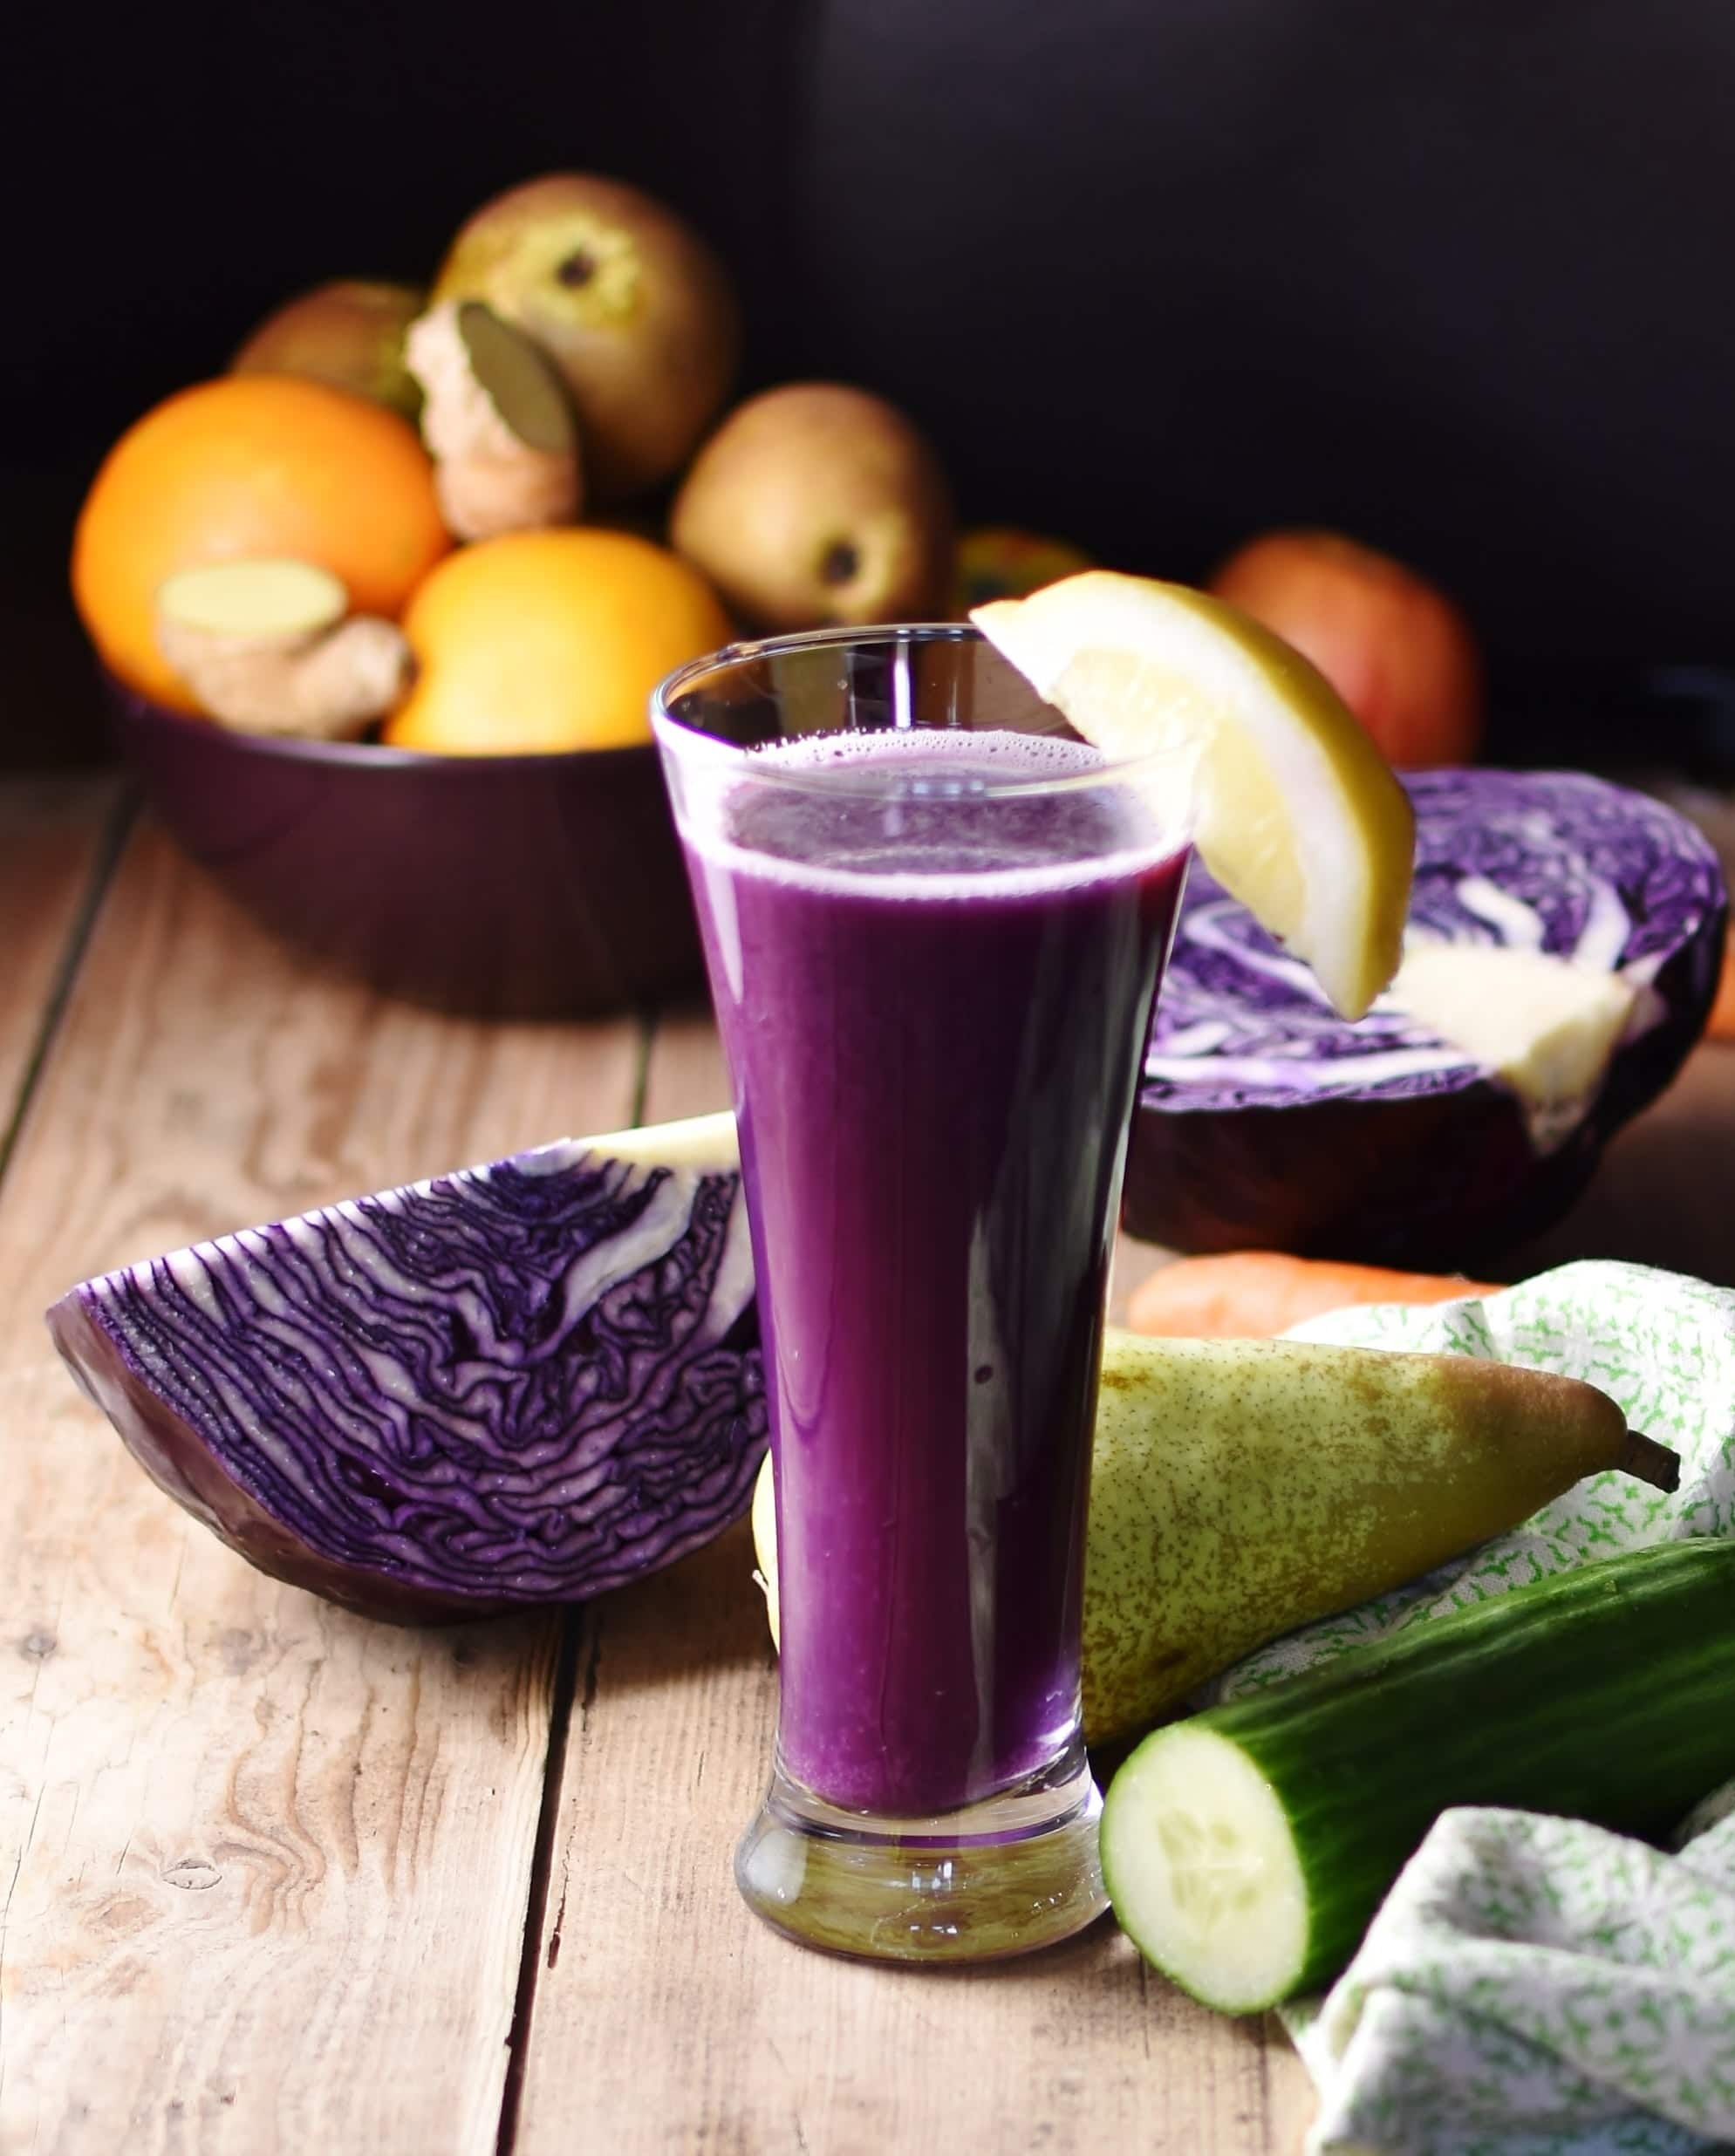 Side view of red cabbage juice inside tall glass with lemon wedge, with red cabbage, pear and cucumber on top of green cloth and more vegetables and fruits in background.